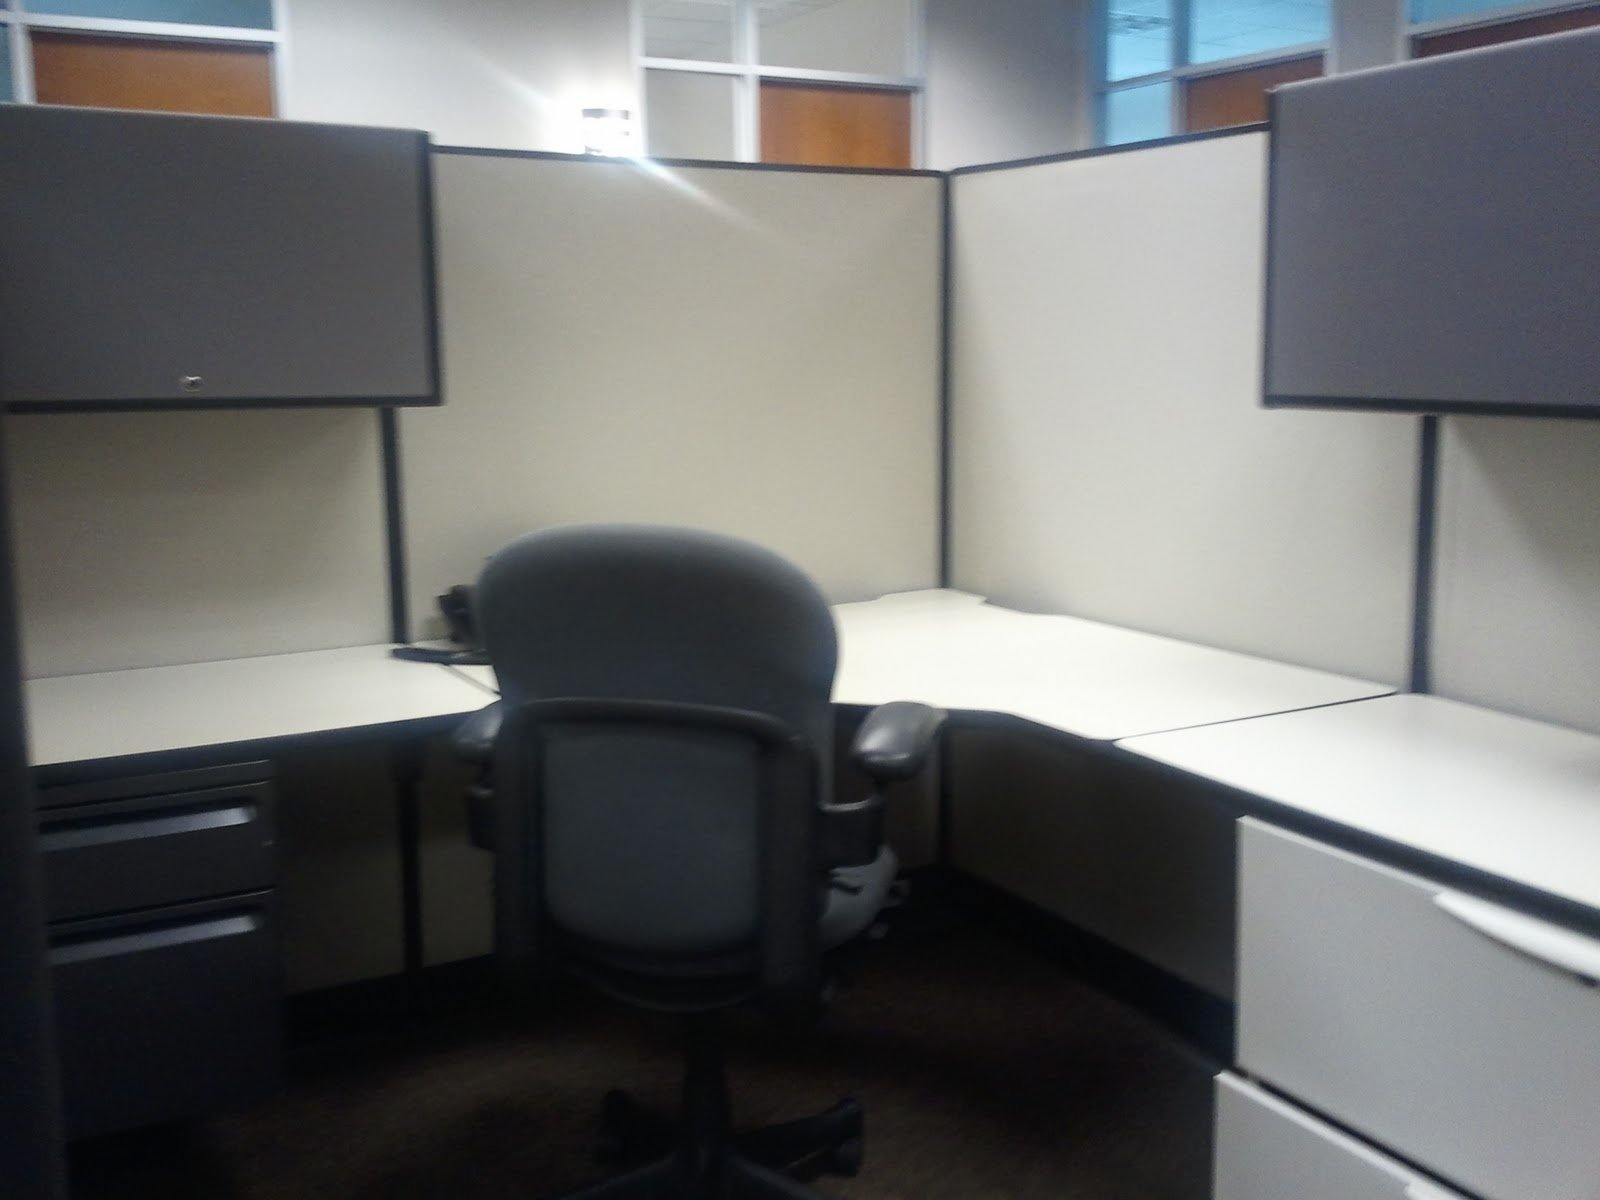 Diy Cubicle Wallpaper 1600x1200